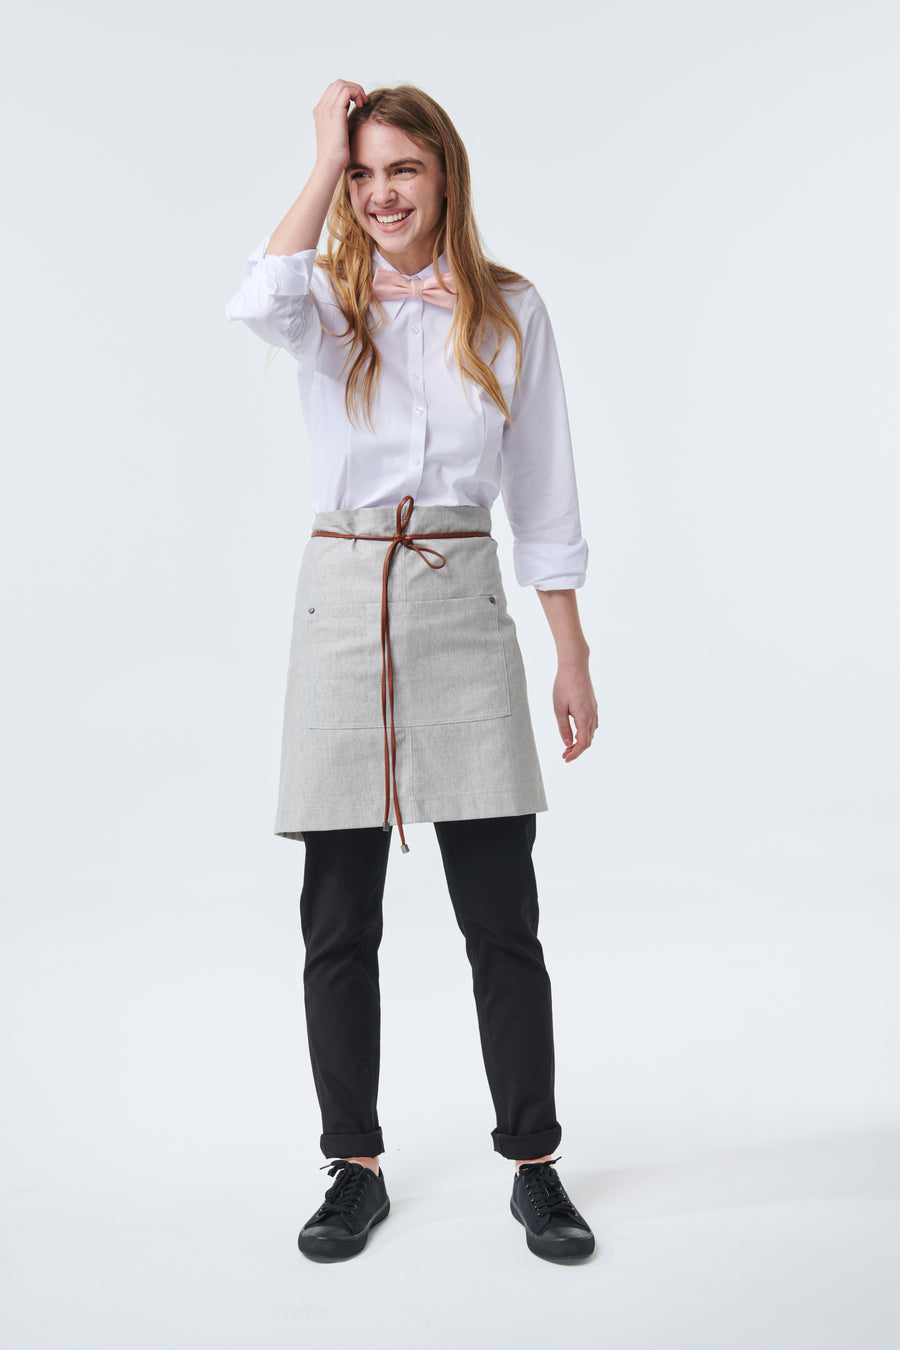 GATSBY Linen Waist Apron with PU leather strap - New Colour 'Cloud'